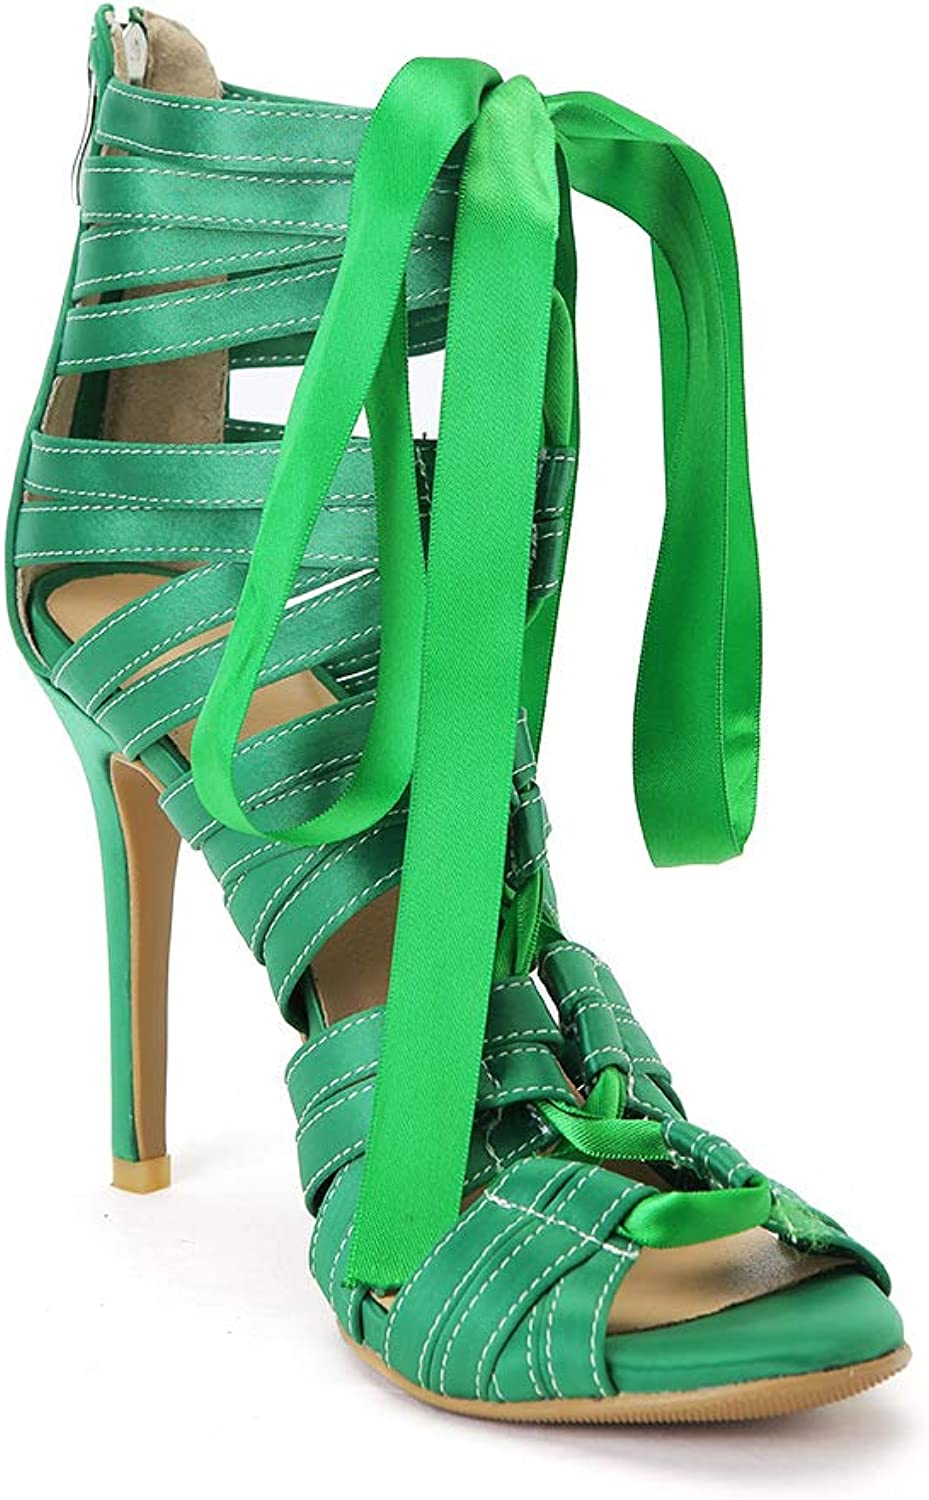 Women's Fashion high-Heeled Strap Sandals for Weddings, Parties, Meetings and Every Other Special Occasion